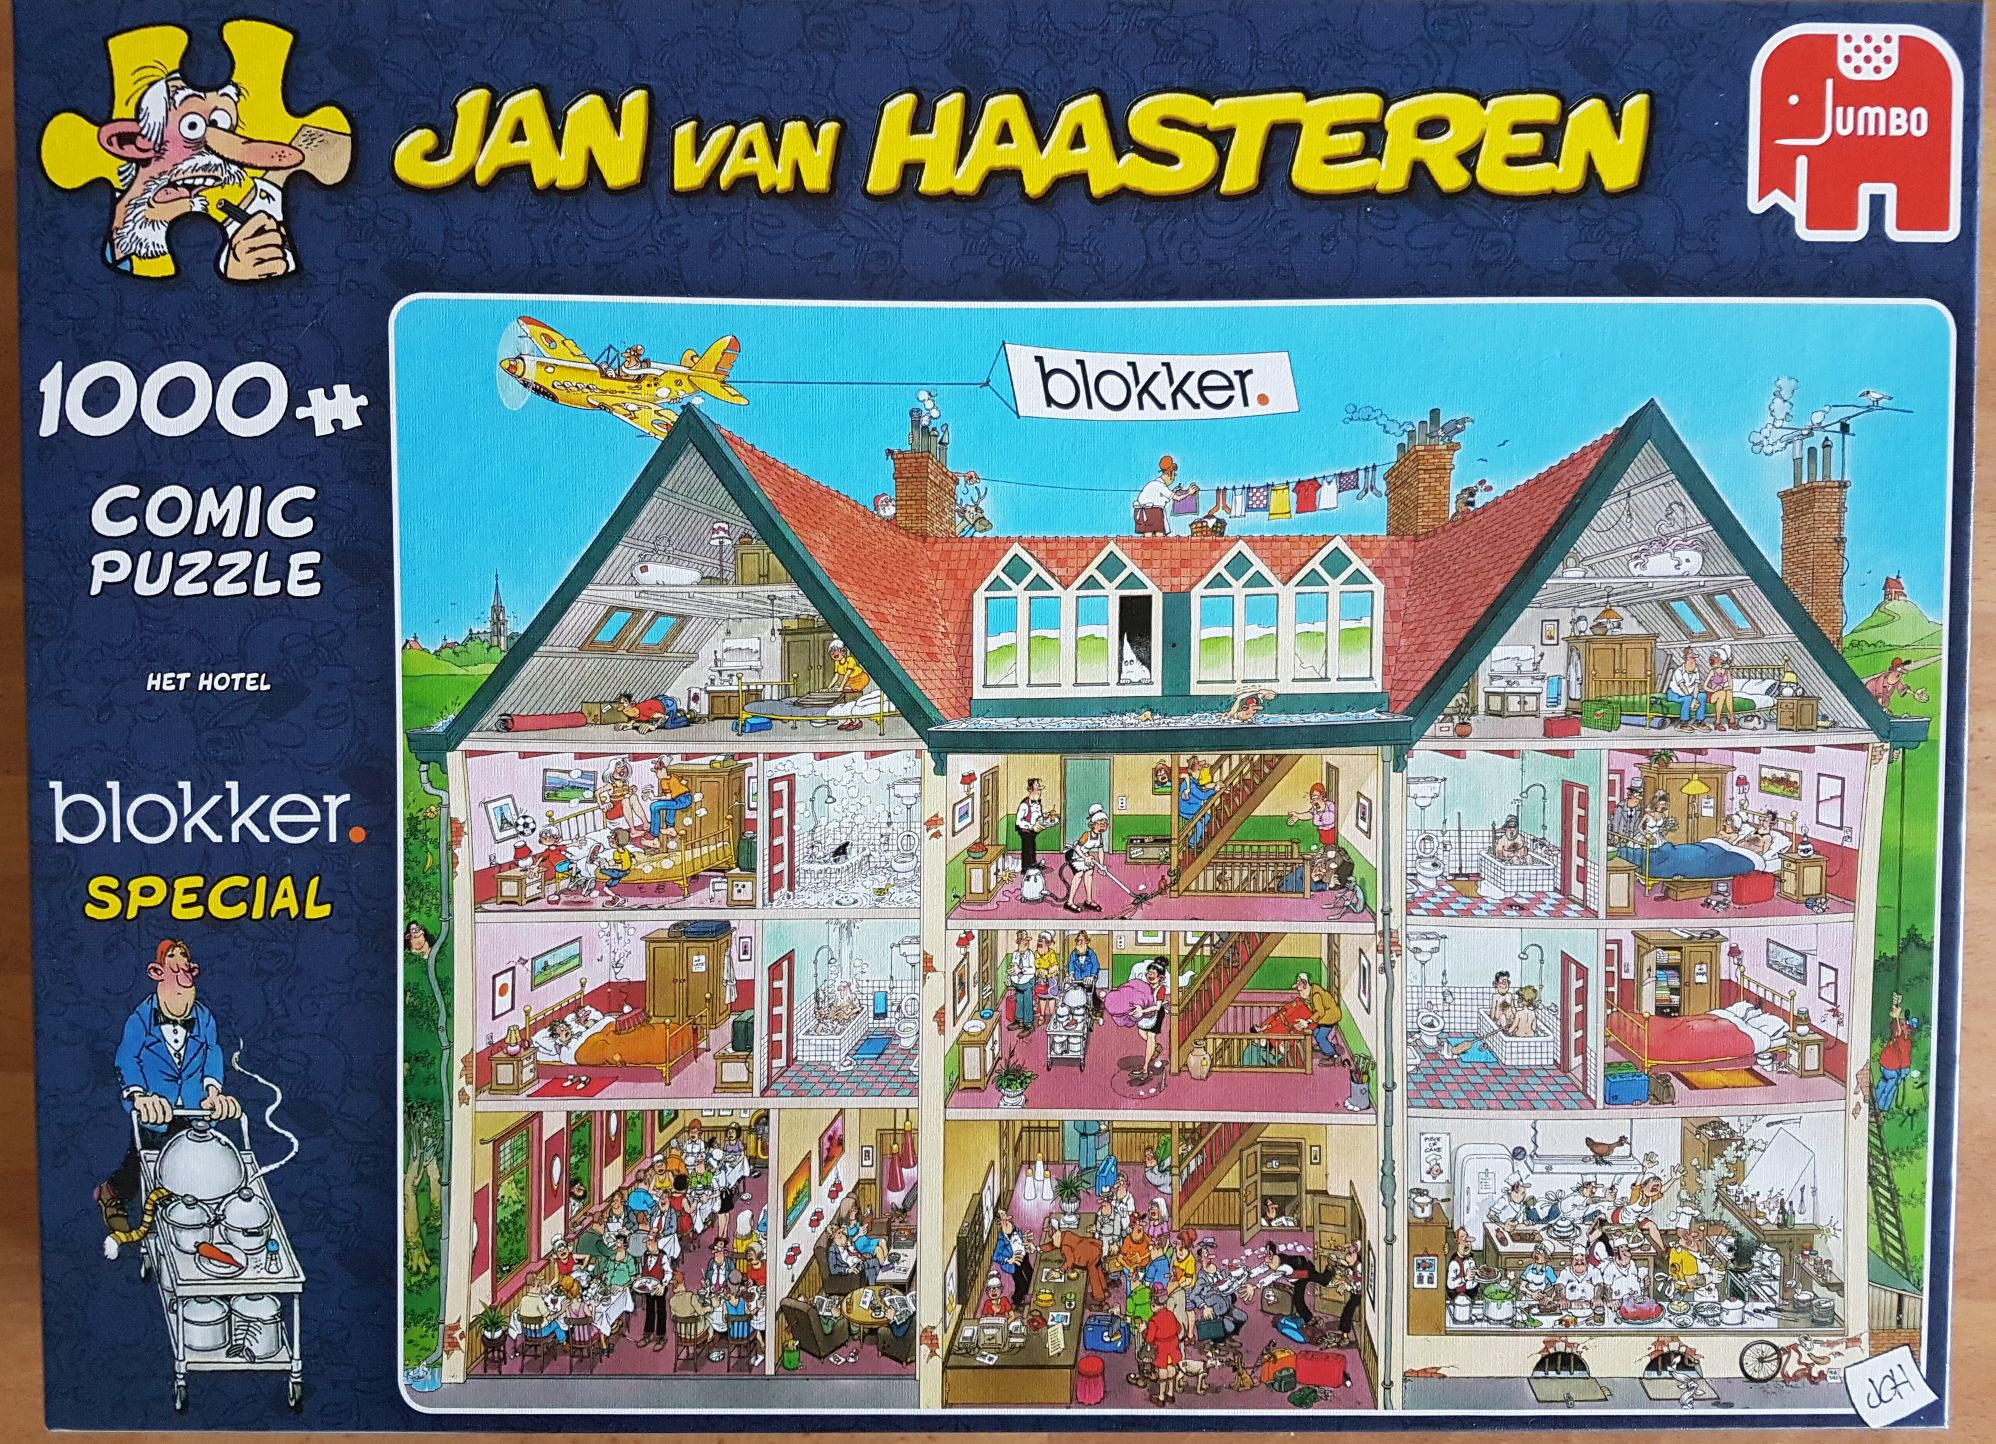 Het Hotel Blokker Special 81636 Puzzle - Jumbo (-) front image (front cover)